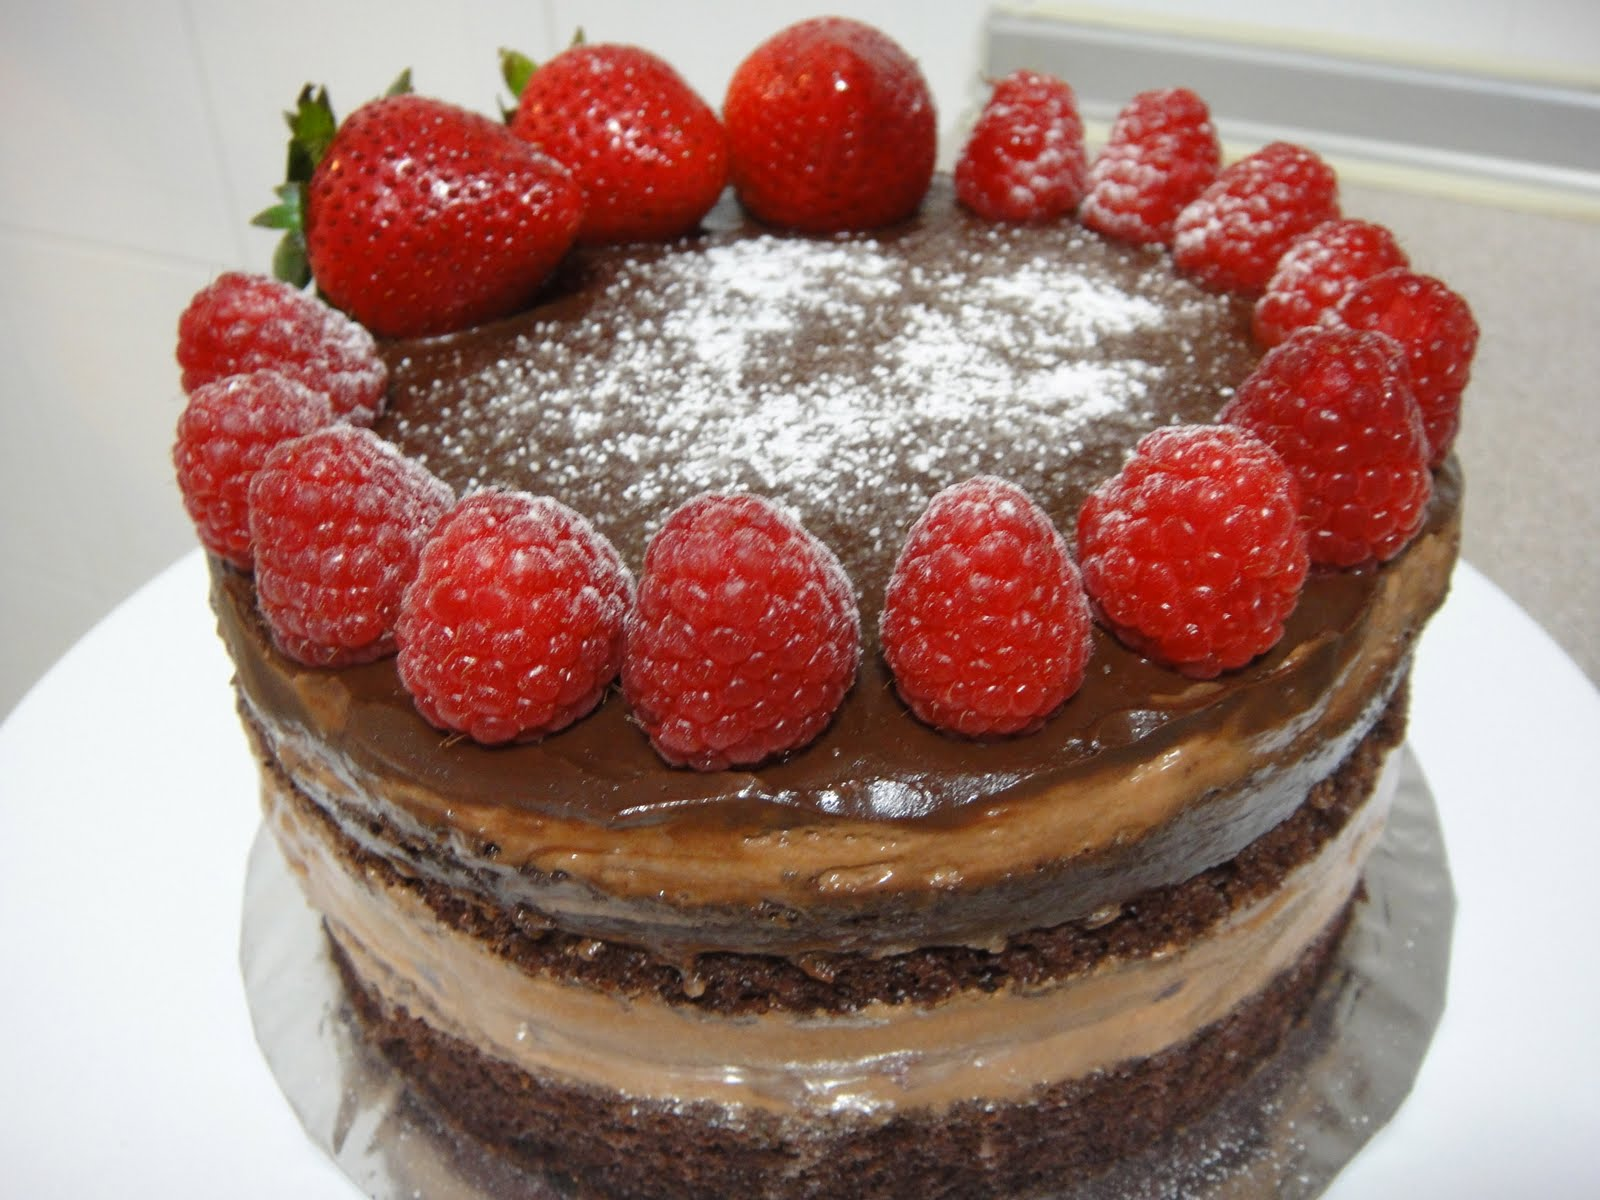 Simple Indulgence: Chocolate Strawberry Cake